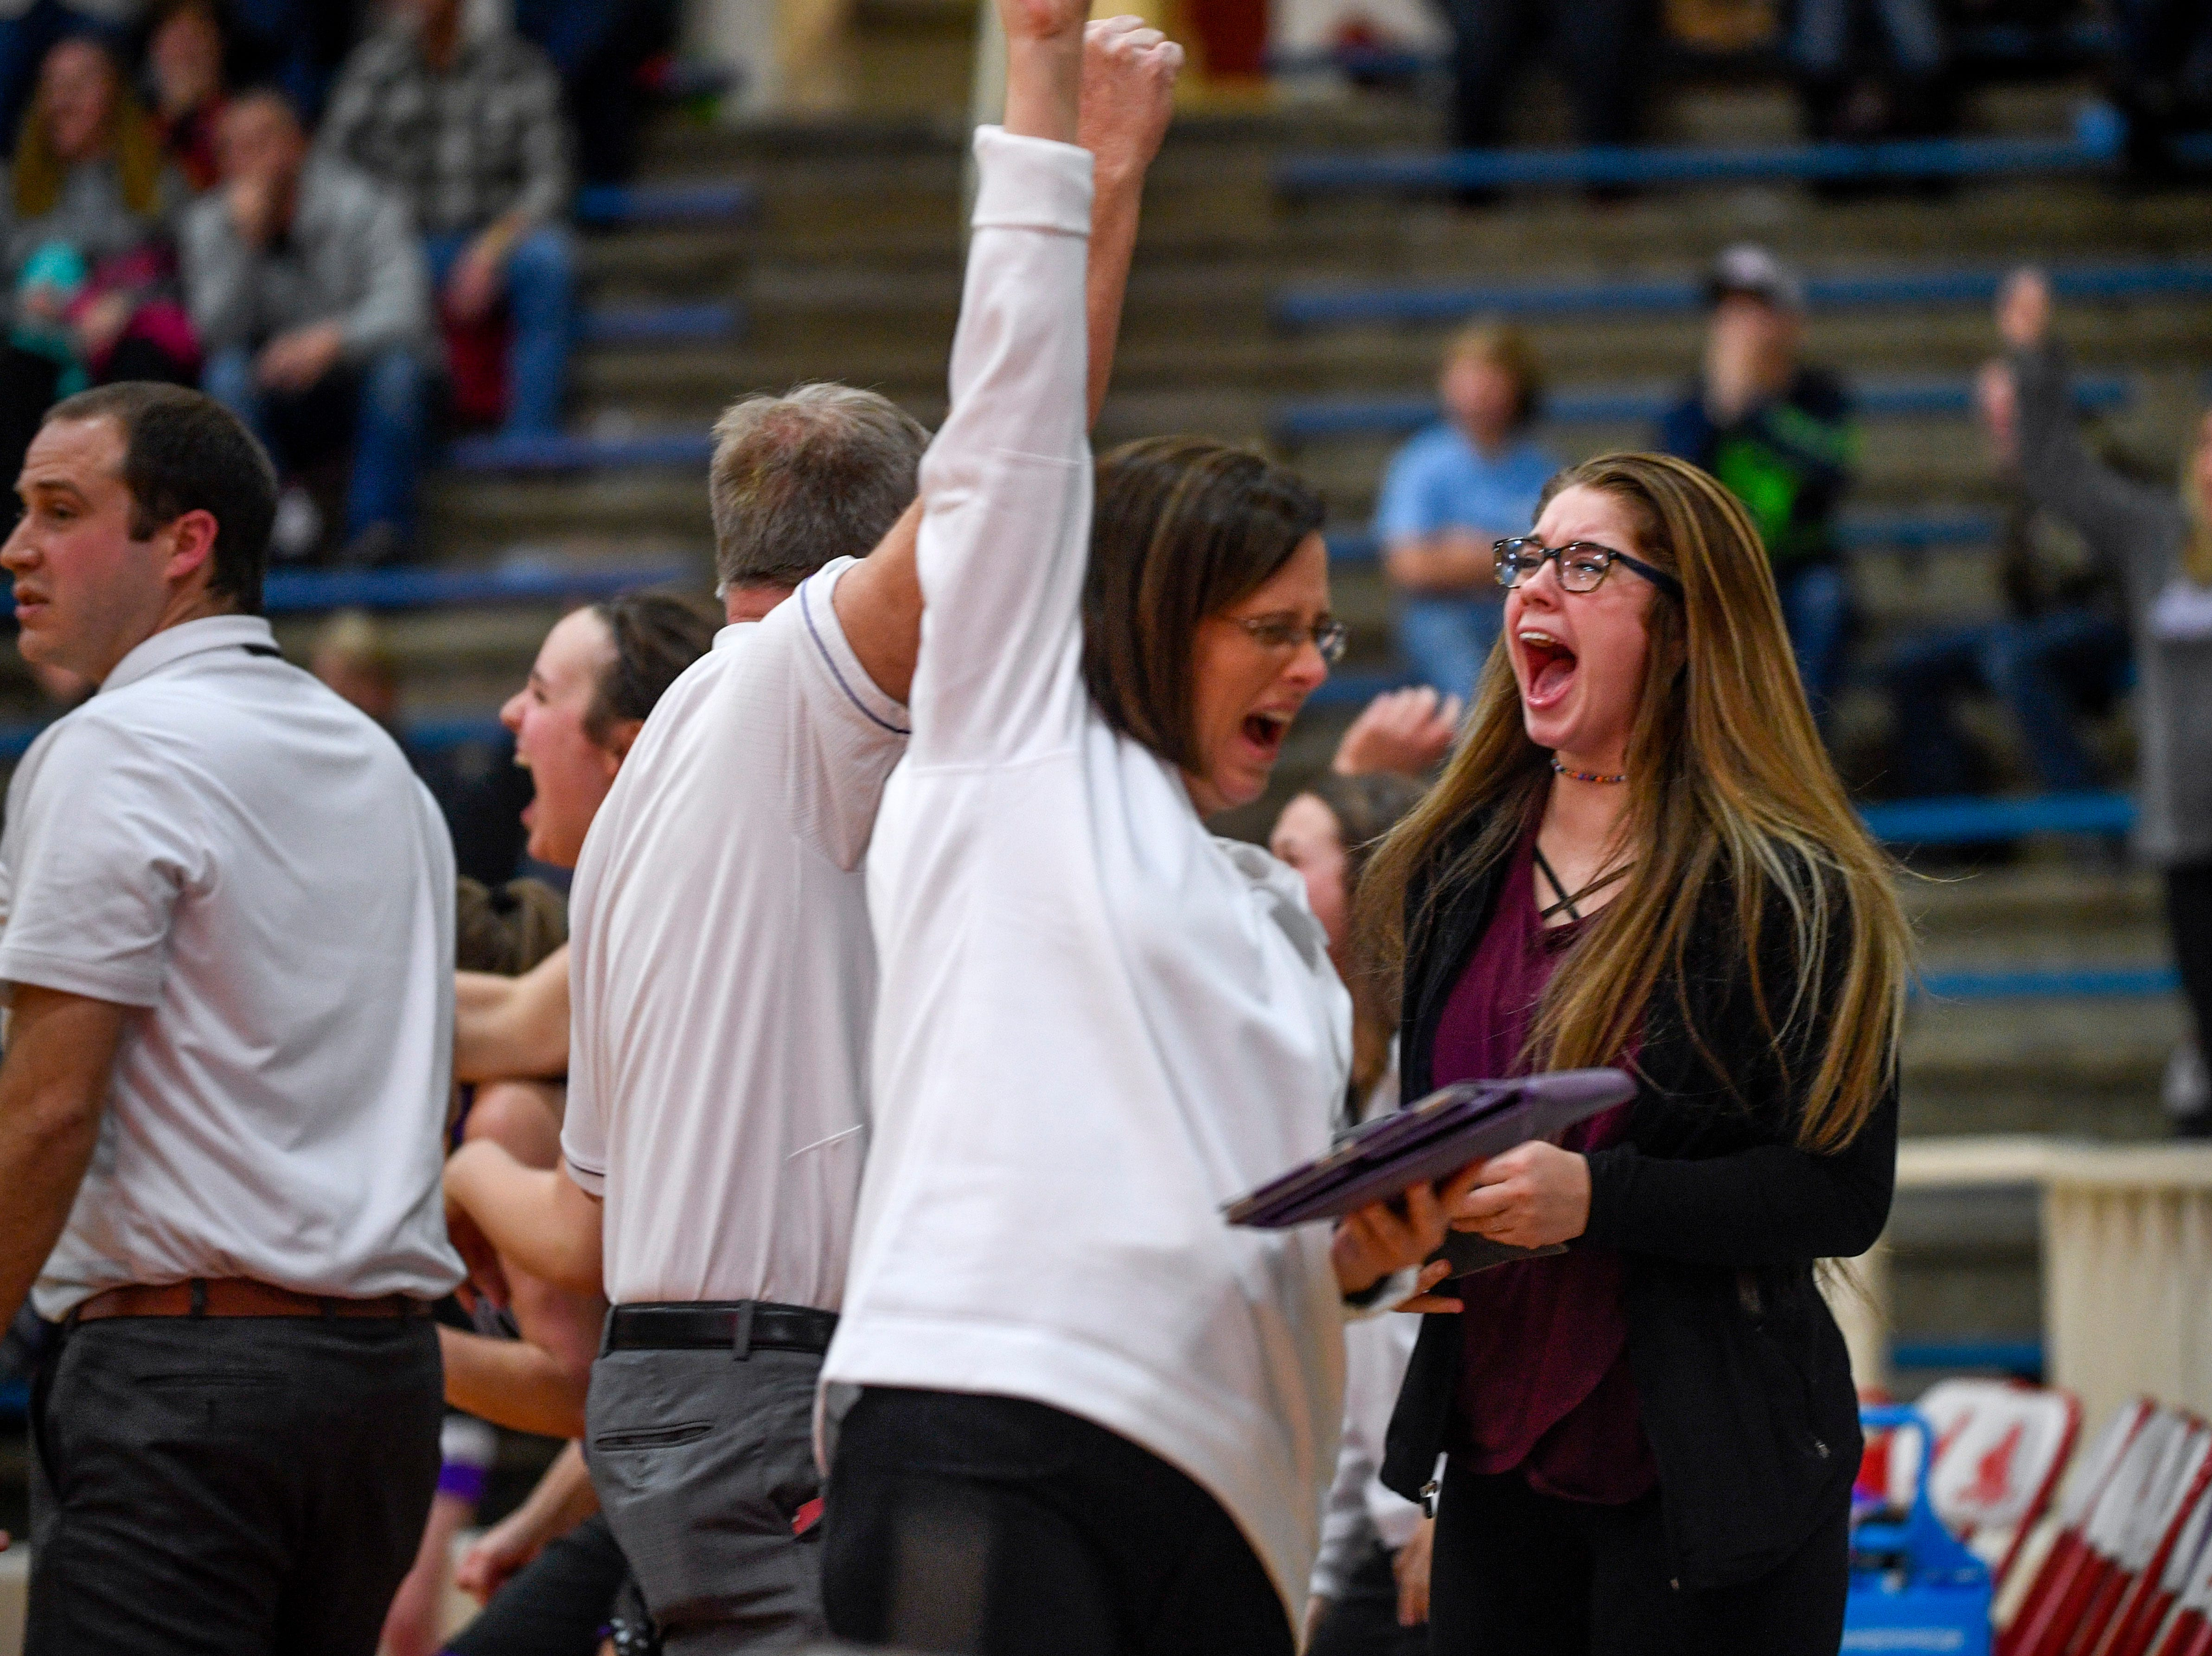 A TCA assistant coach jumps up and yells in excitement at a 3-point shot made at the buzzer to win TCA the game in a TSSAA girls basketball game between Gibson County and Trinity Christian Academy at Gibson County High School in Dyer, Tenn., on Friday, Jan. 11, 2019.